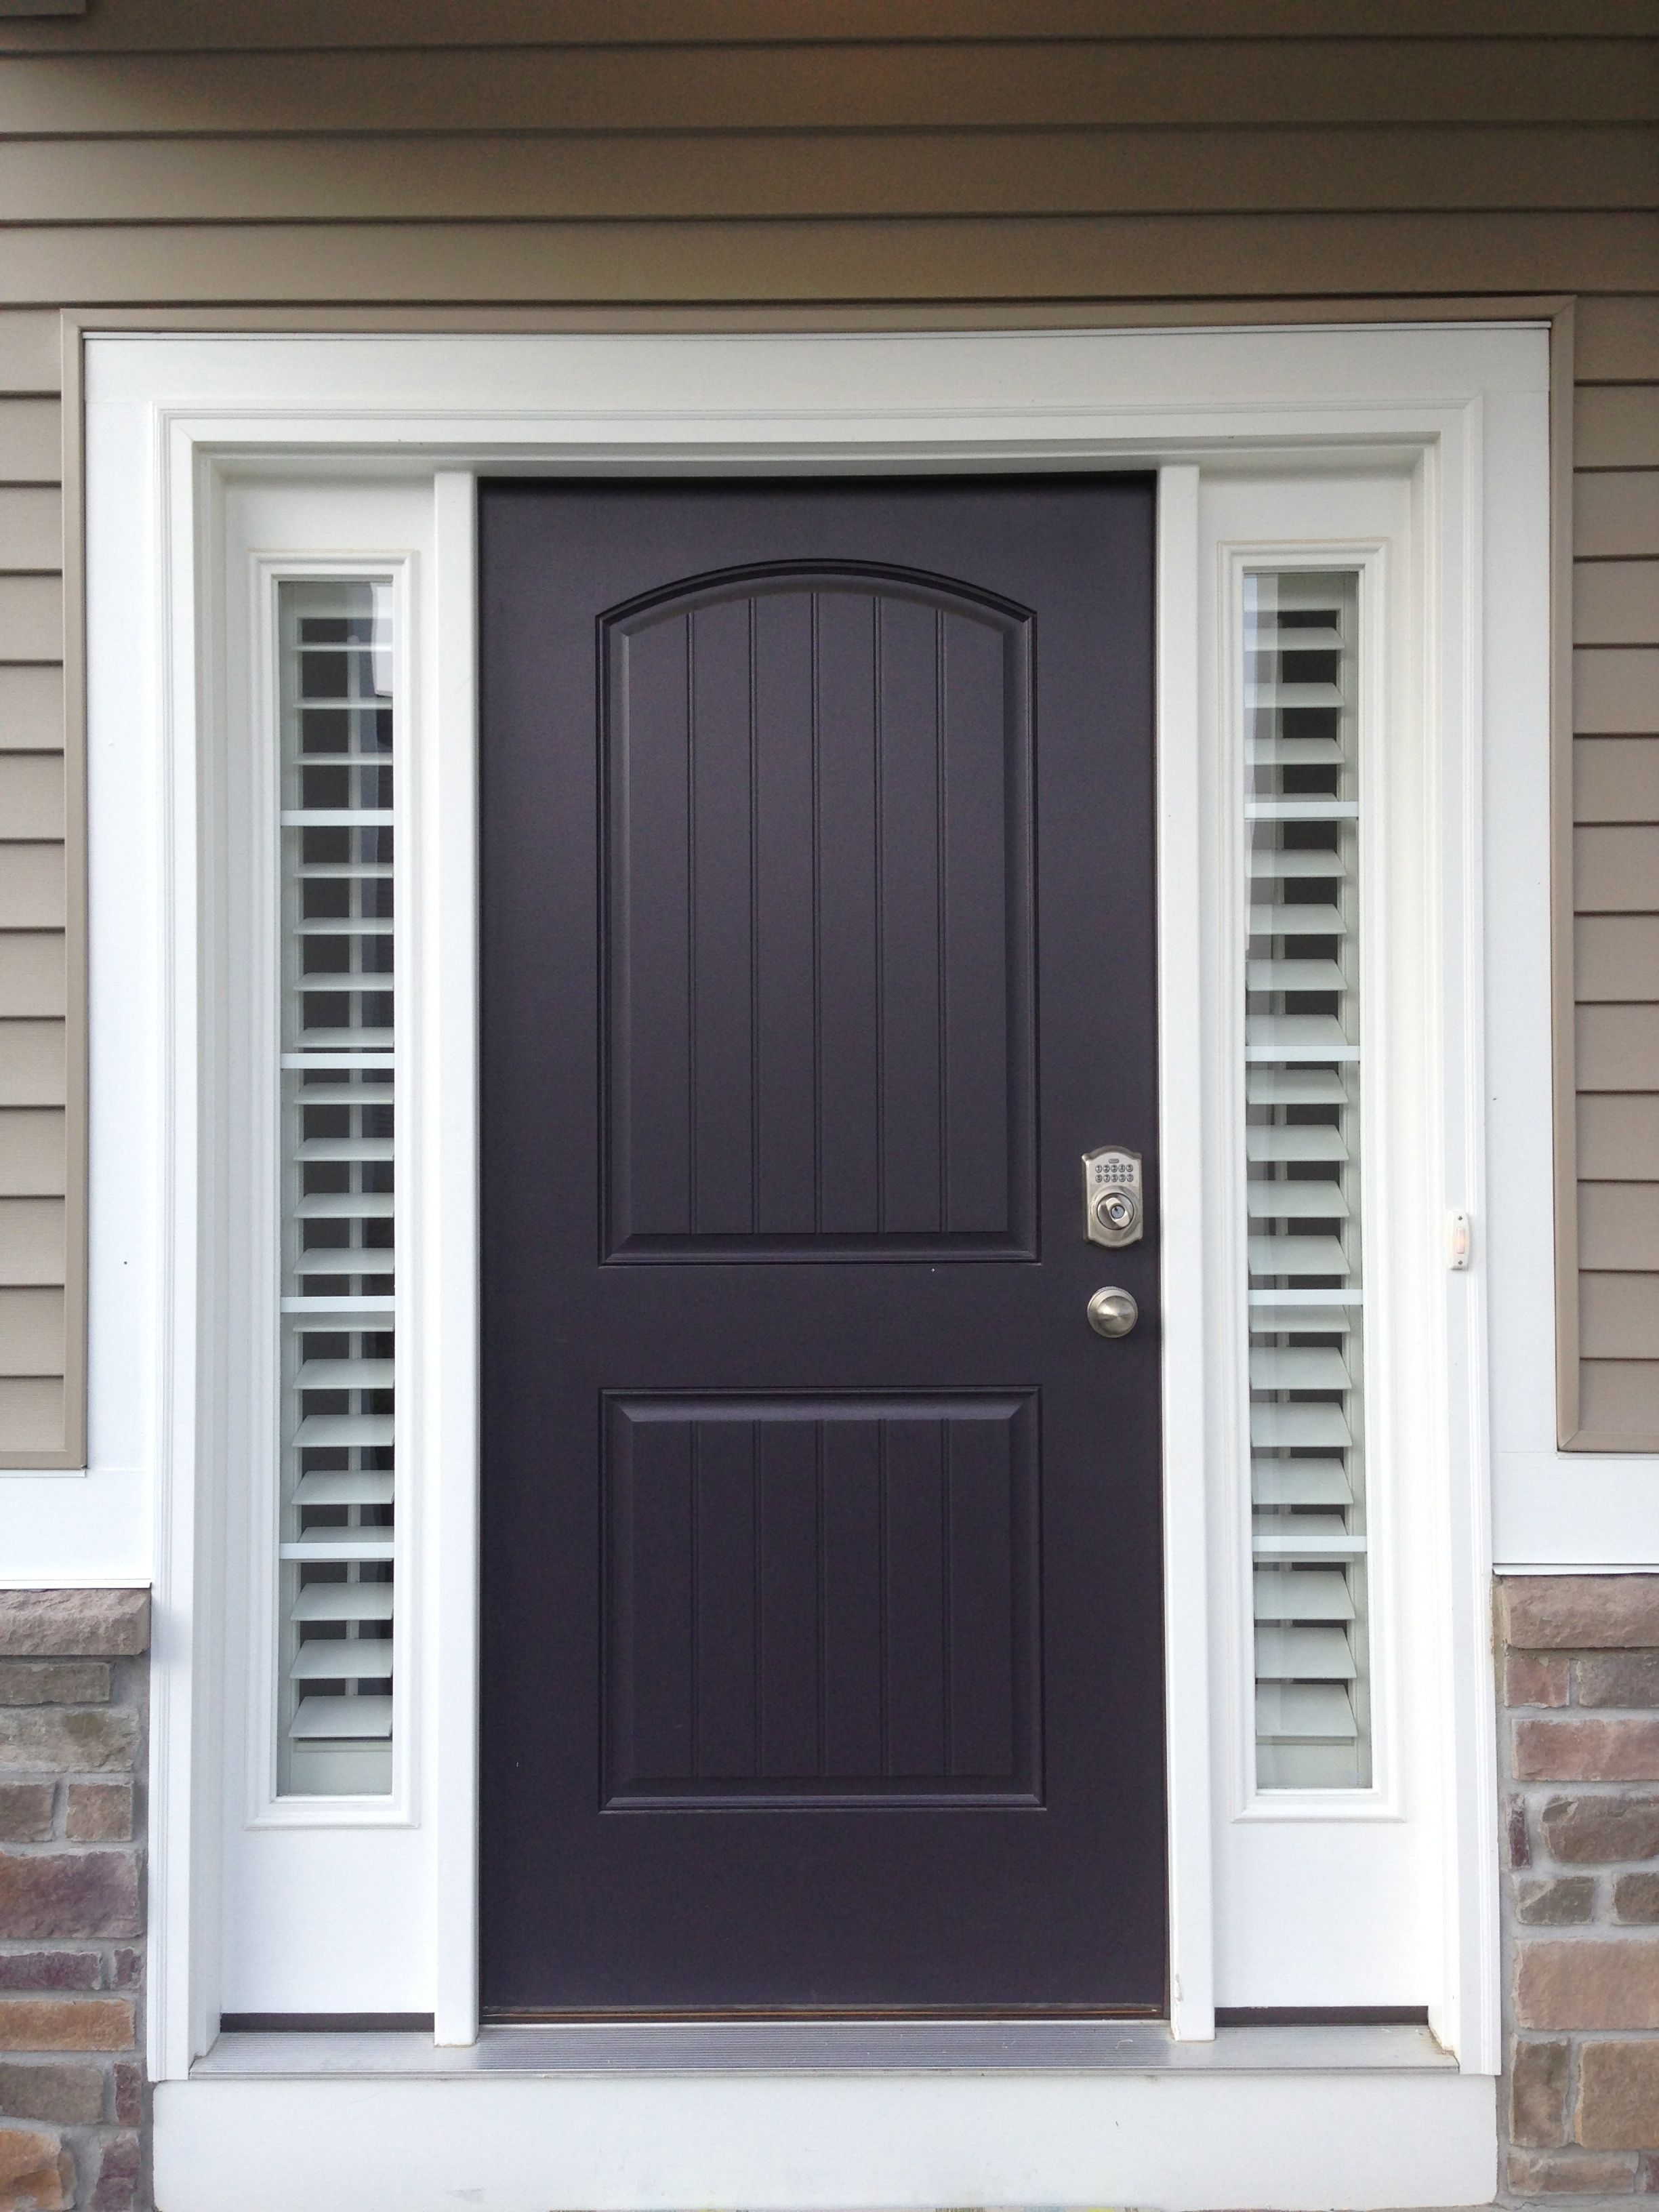 Entry door sidelight window shutters sunburst shutters for Front window ideas